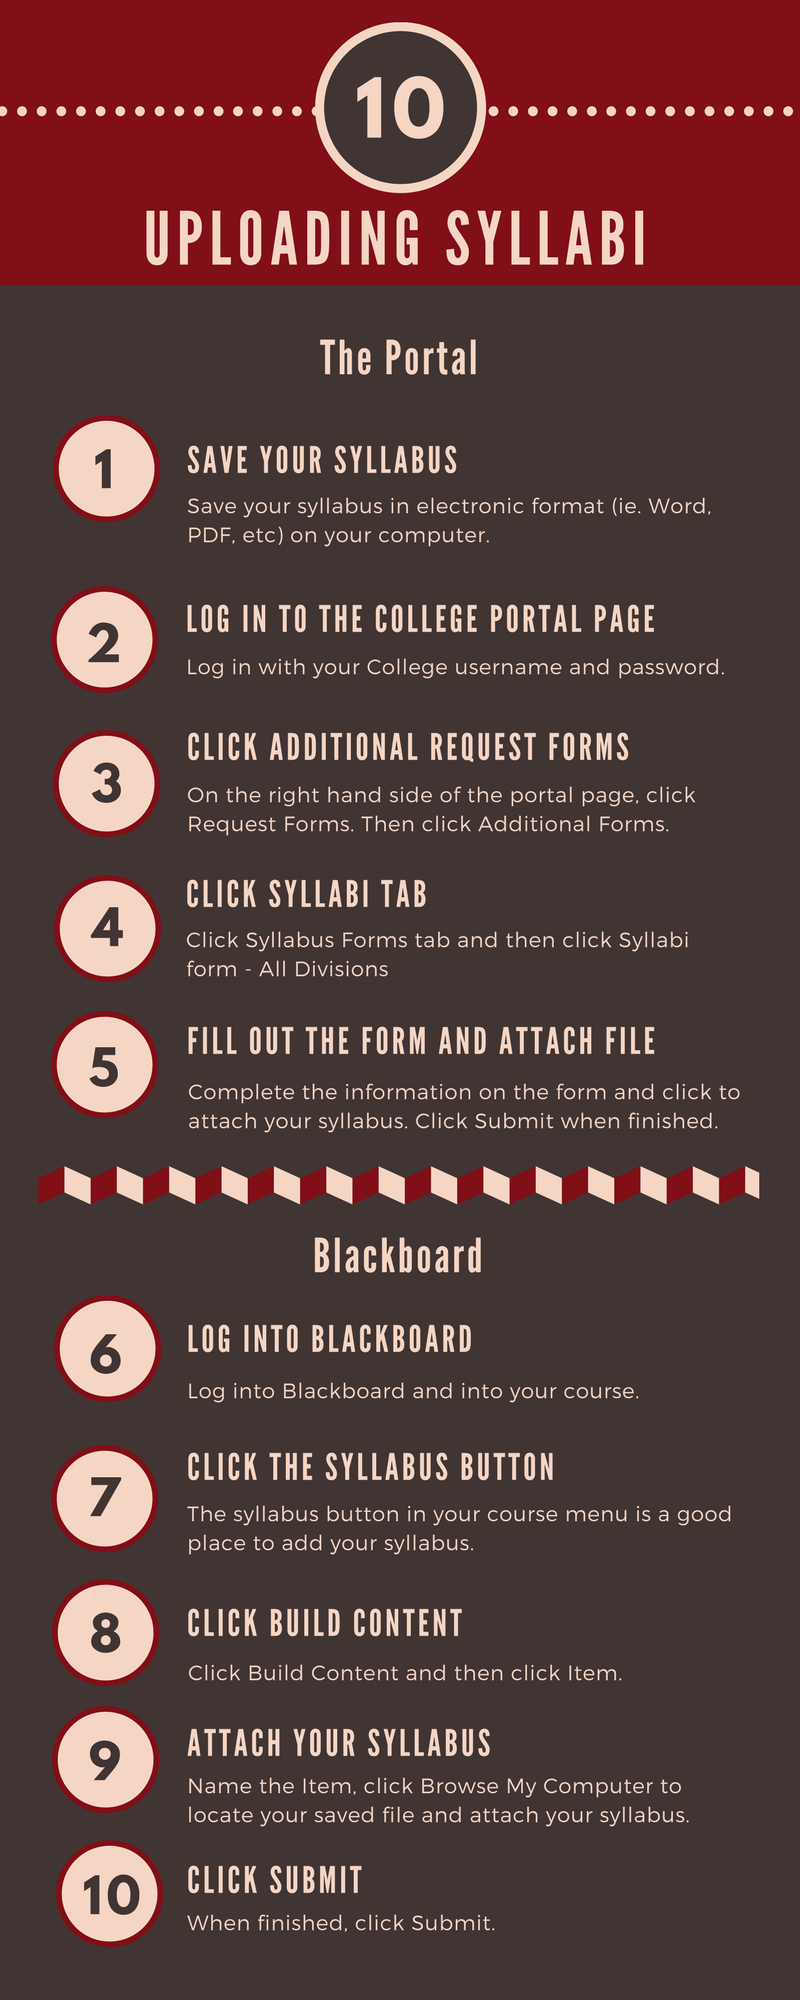 10 steps for uploading Syllabi. Save file, click on Request Forms, Click Additional Forms, click Syllabi all Divisions, fill out the form and attach file. Log into Blackboard, click Syllabus option, click Build Content and click Item, Give the Item a name and attach file. Click Submit when finished.